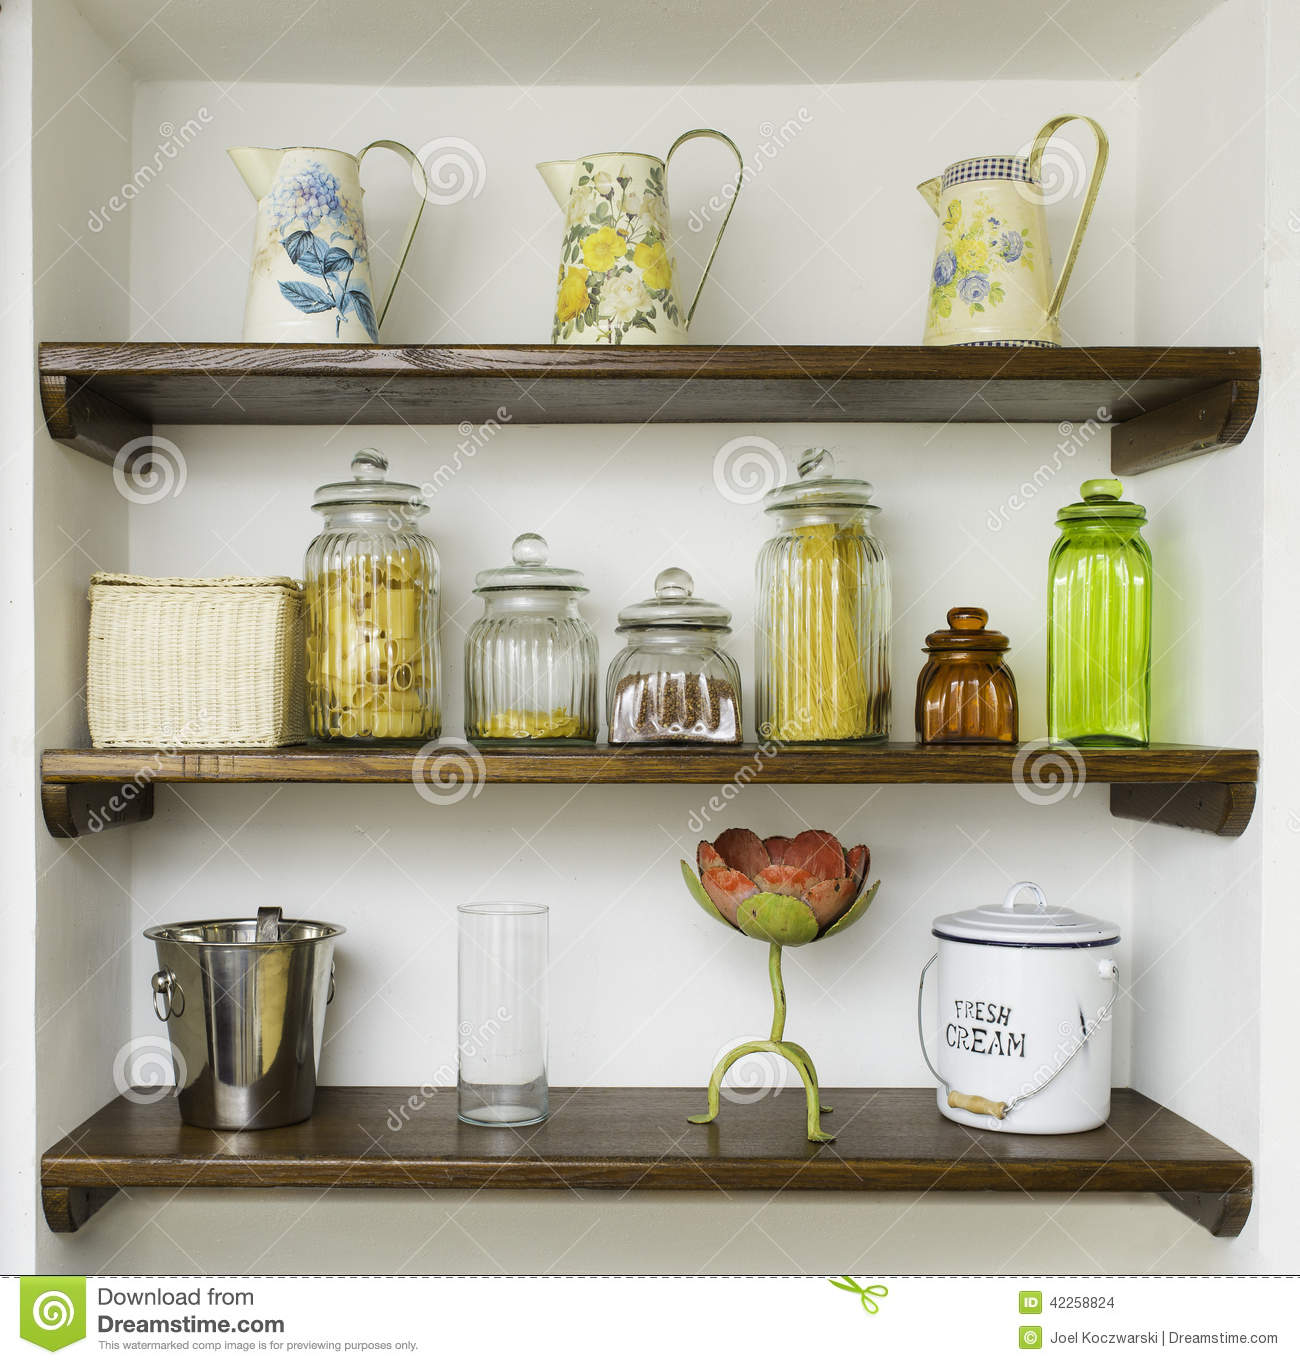 For Kitchen Shelves Vintage Kitchen Shelves Jars Jugs Pots Classic Italian Pasta 42258824jpg